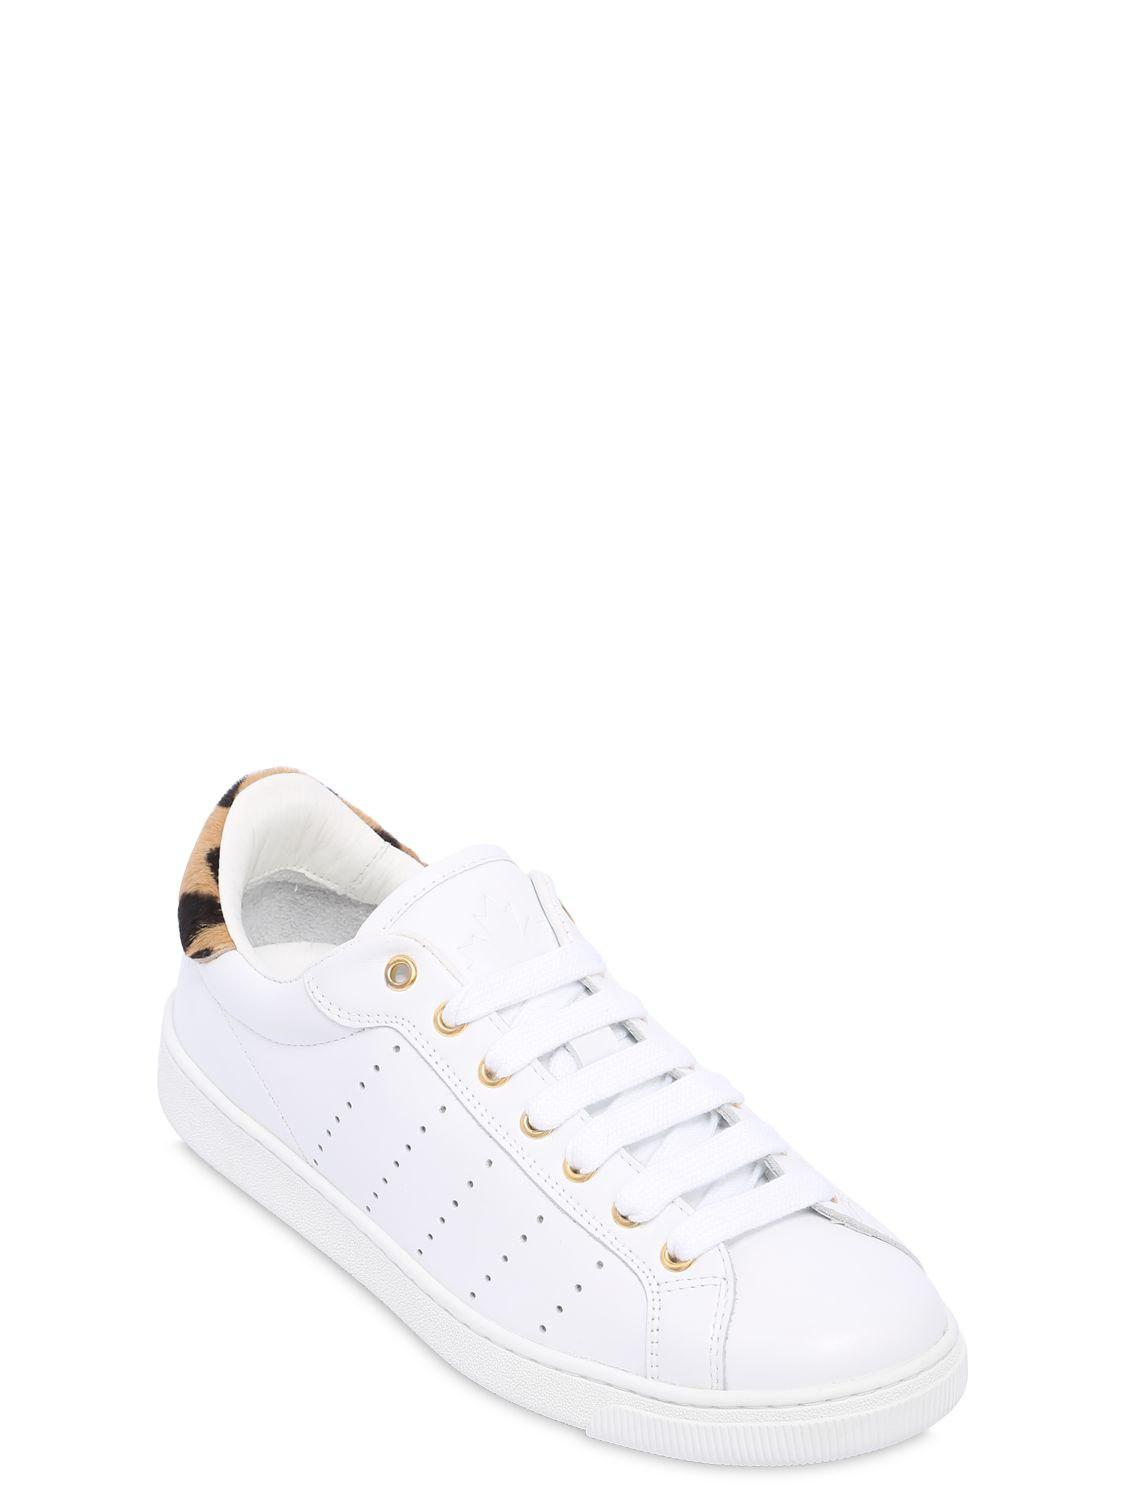 Dsquared2 10MM LEATHER SNEAKERS W/ LEOPARD DETAIL